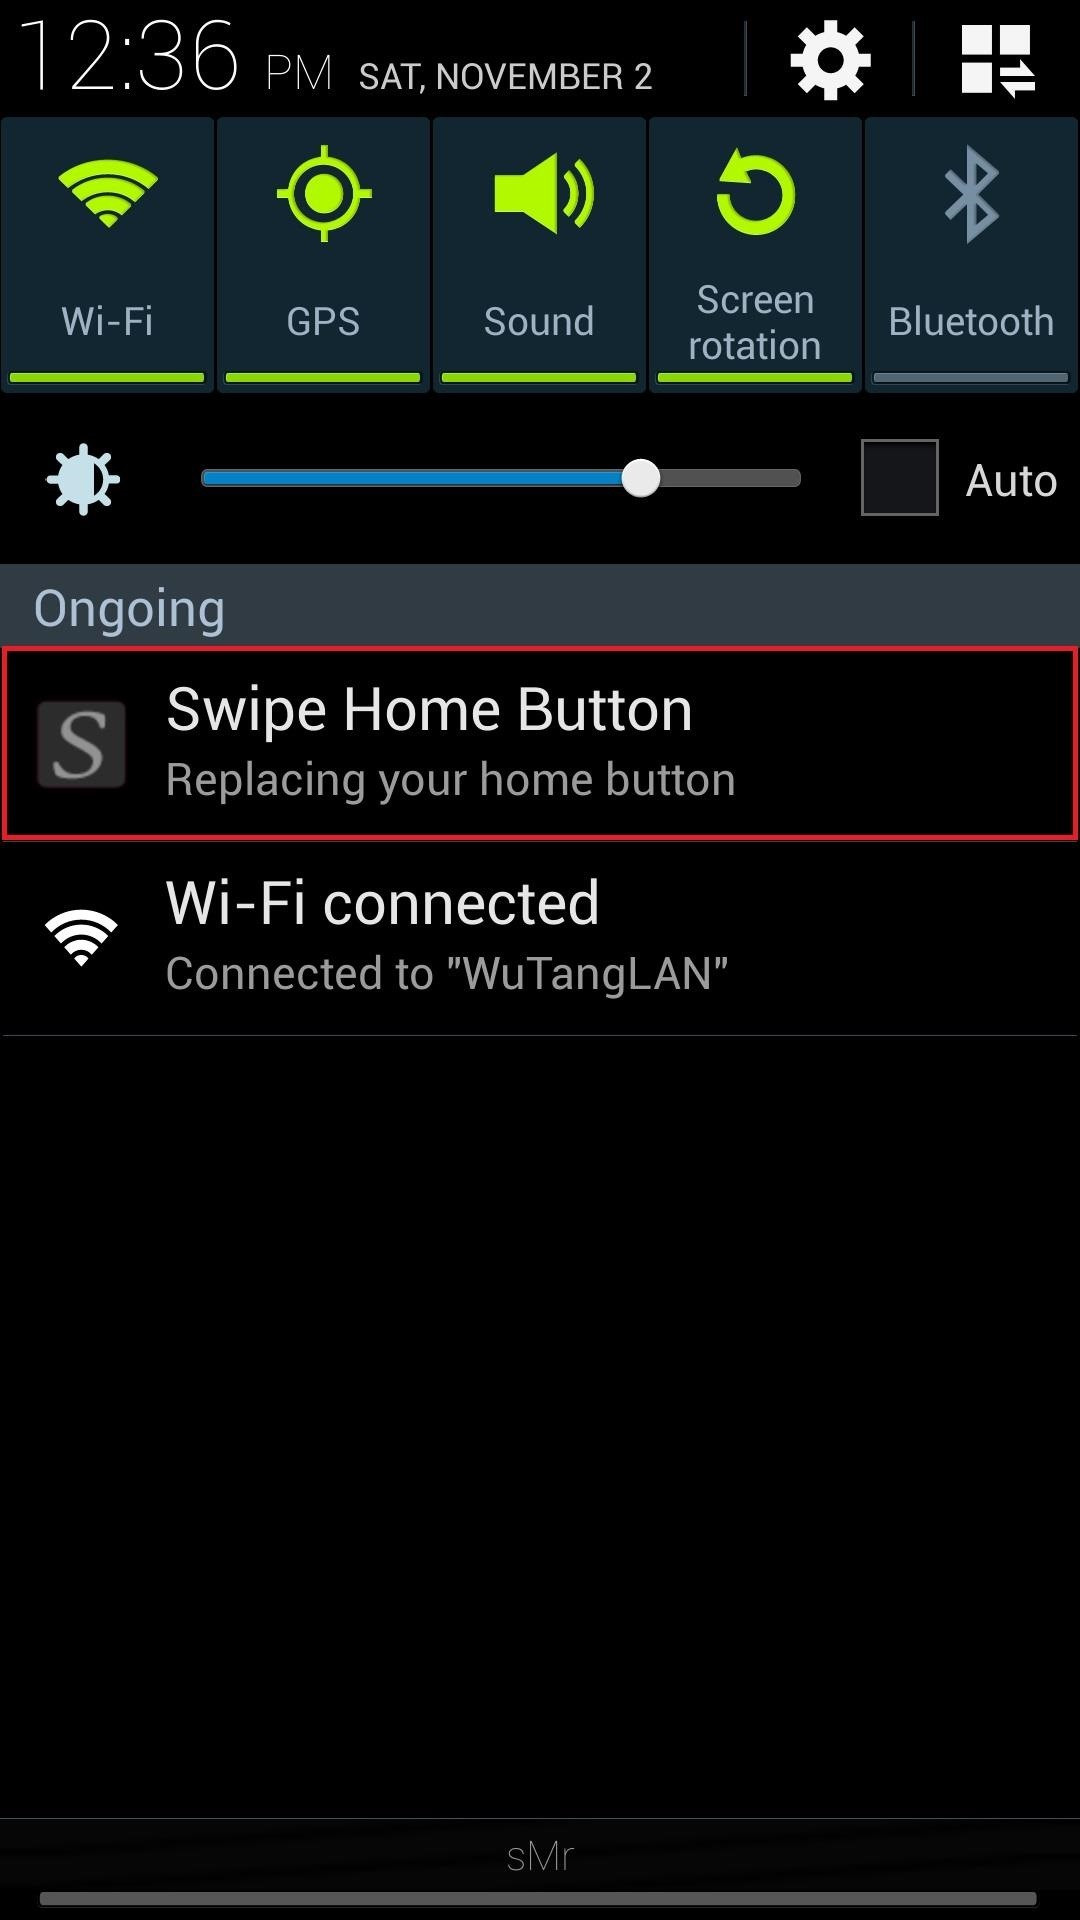 My Friends Told Me About You / Guide android home button pressed